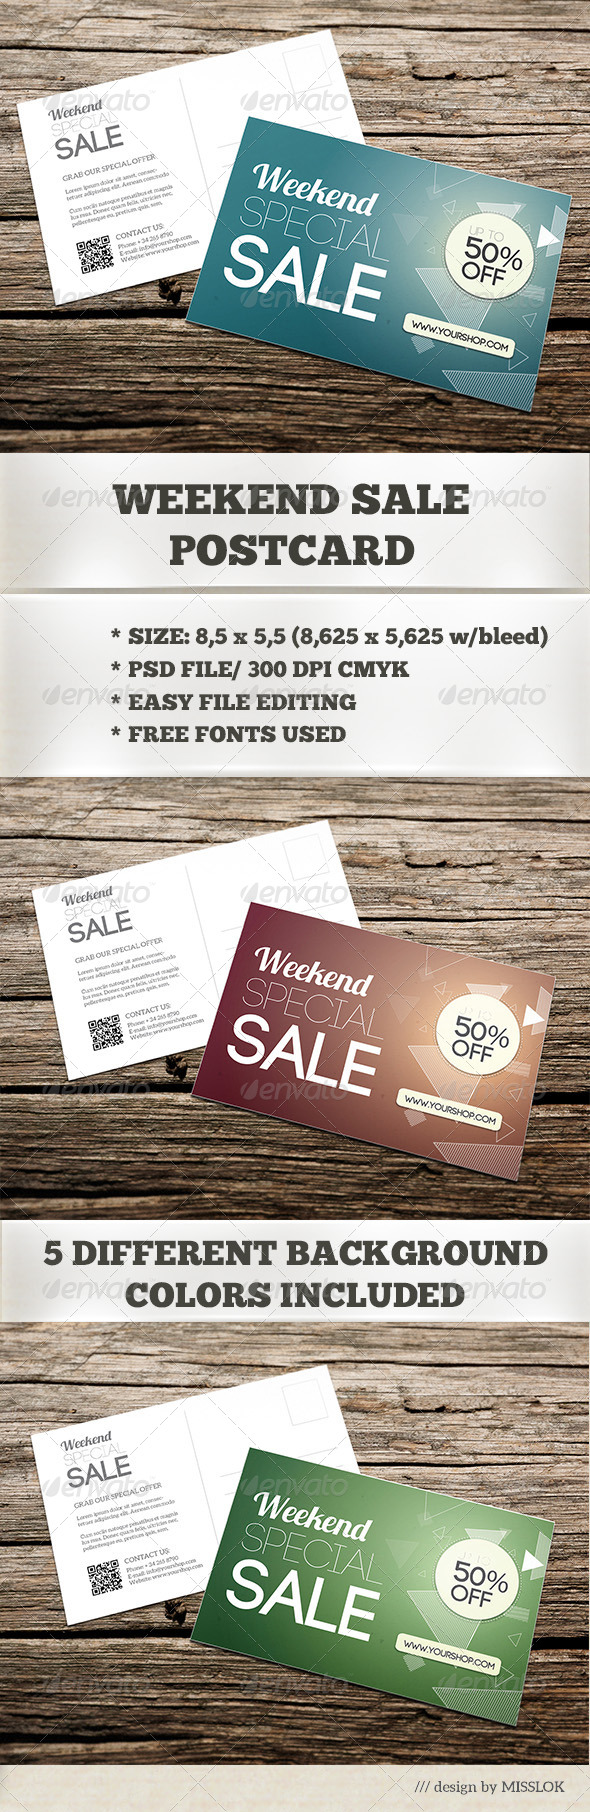 GraphicRiver Weekend Sale Postcard Mailer 6910529